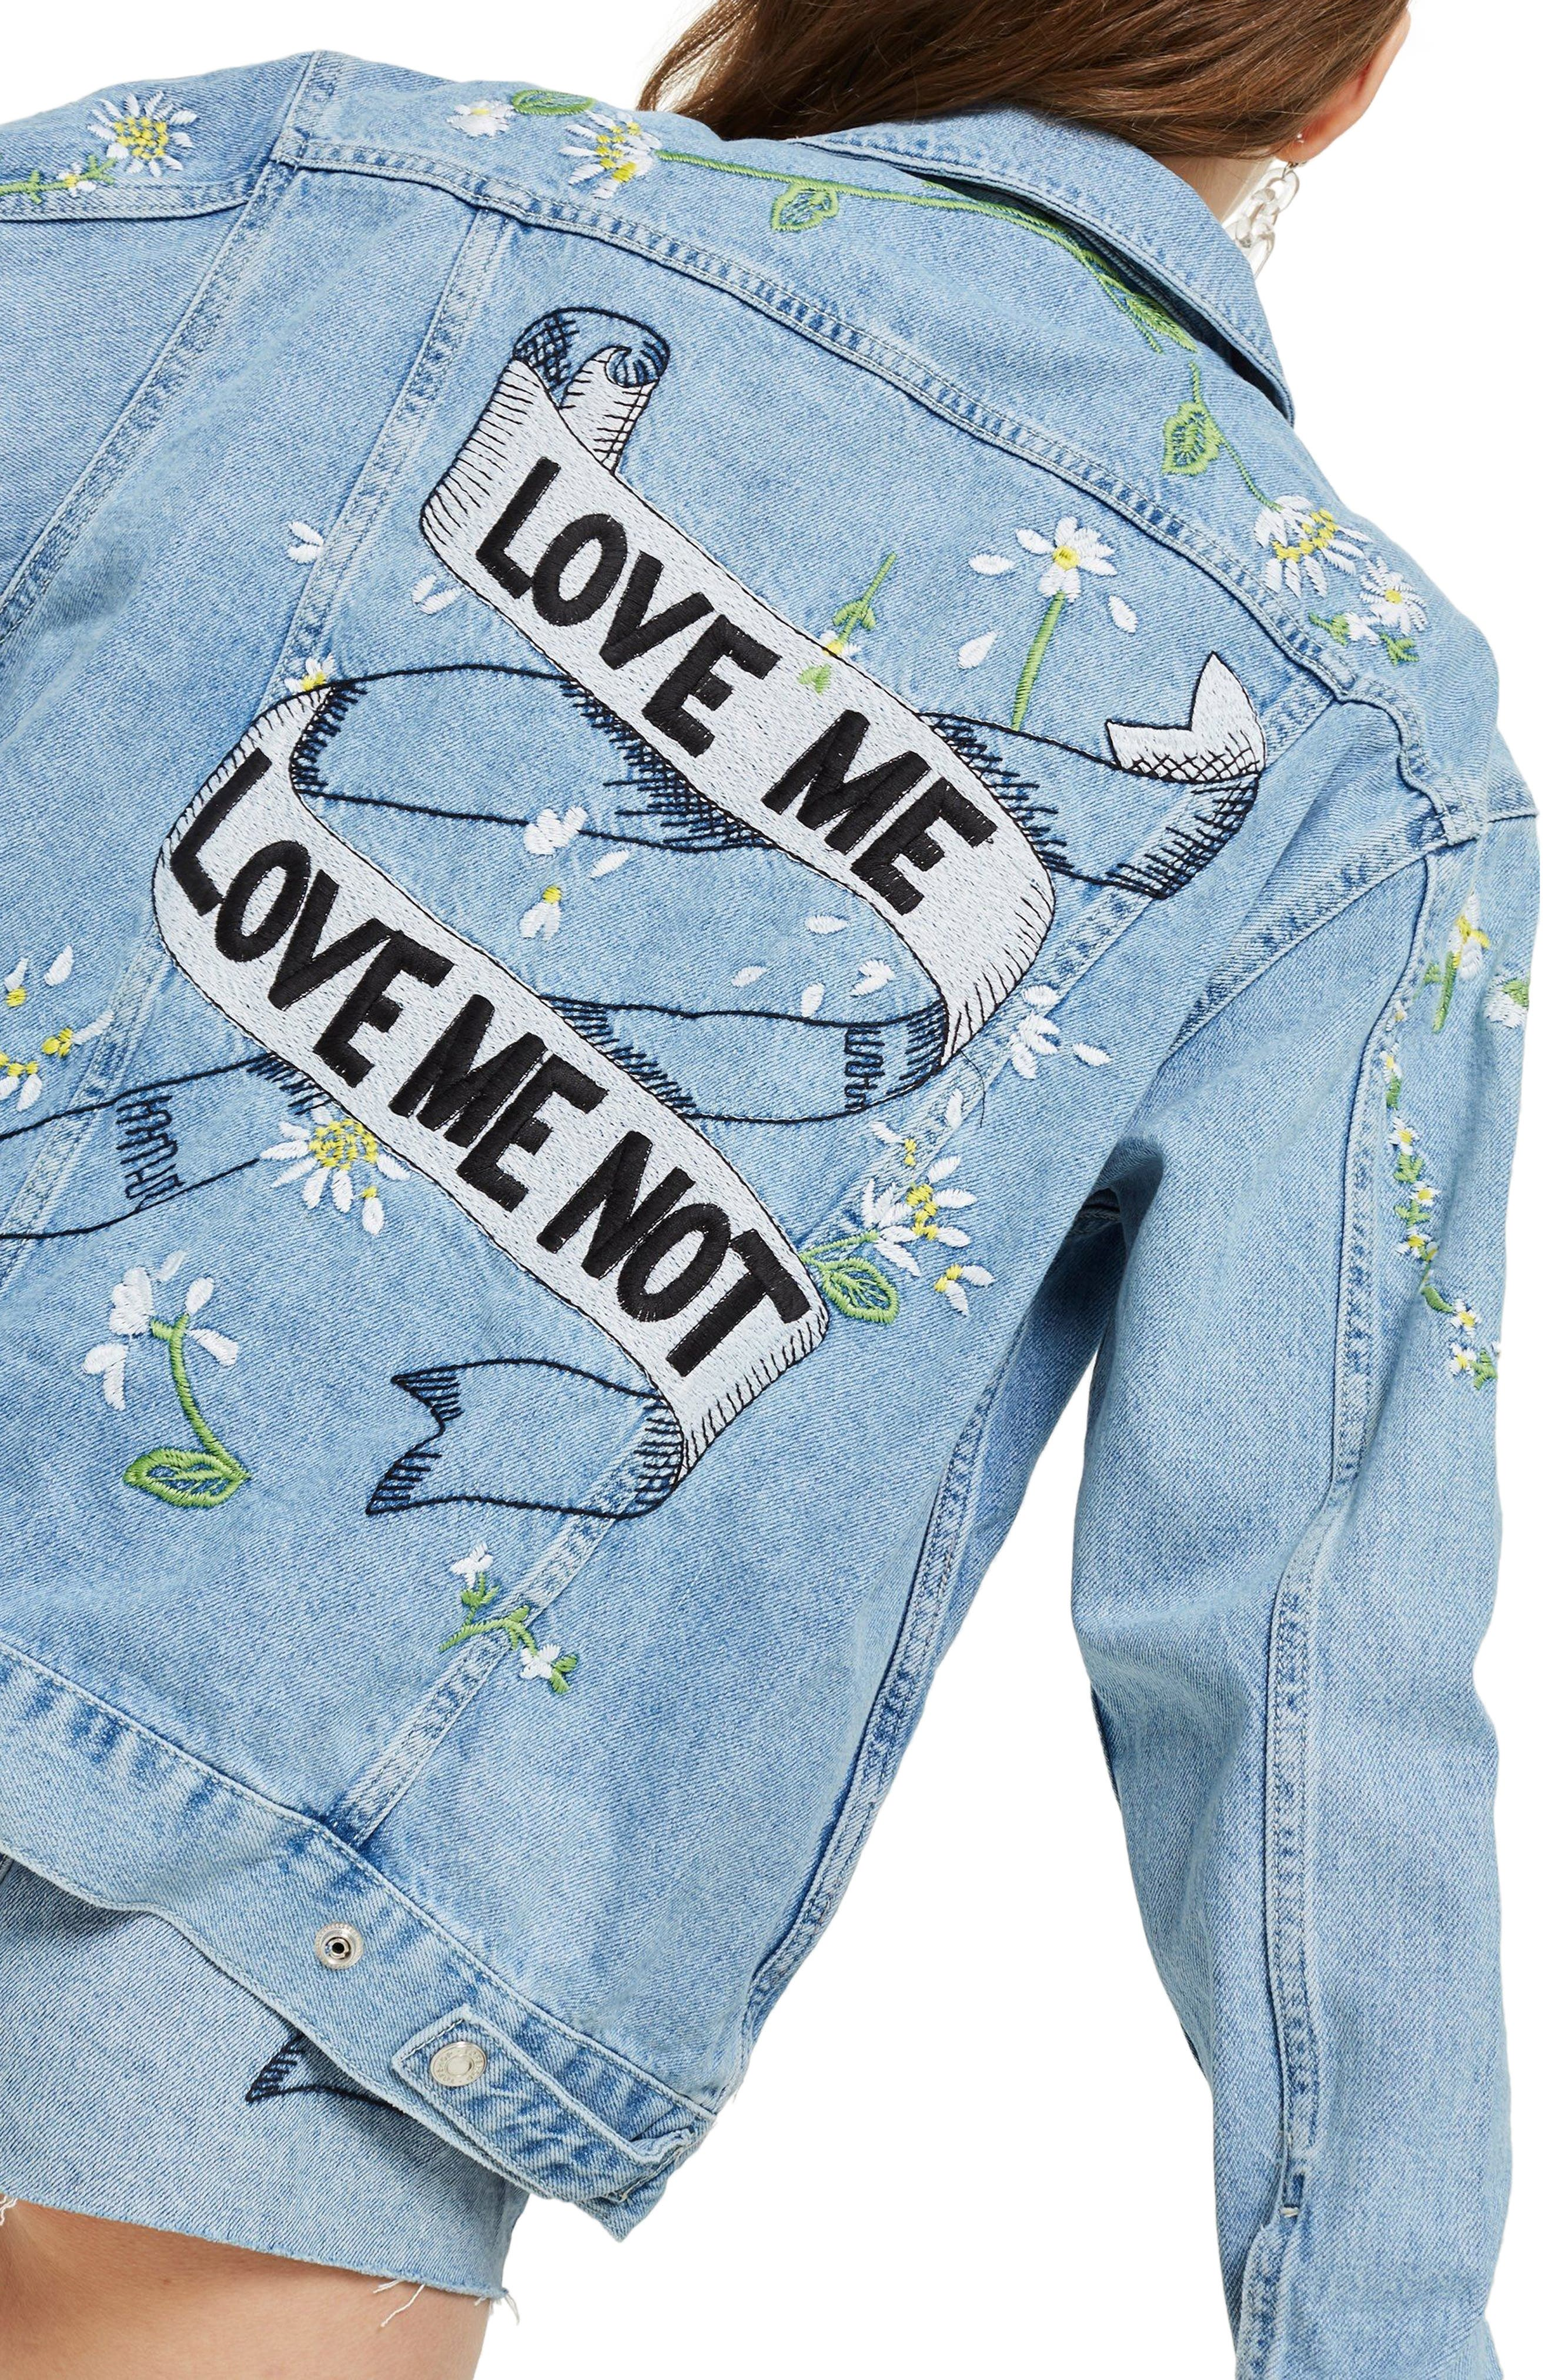 Love Me Not Embroidered Denim Jacket,                             Alternate thumbnail 2, color,                             Mid Denim Multi